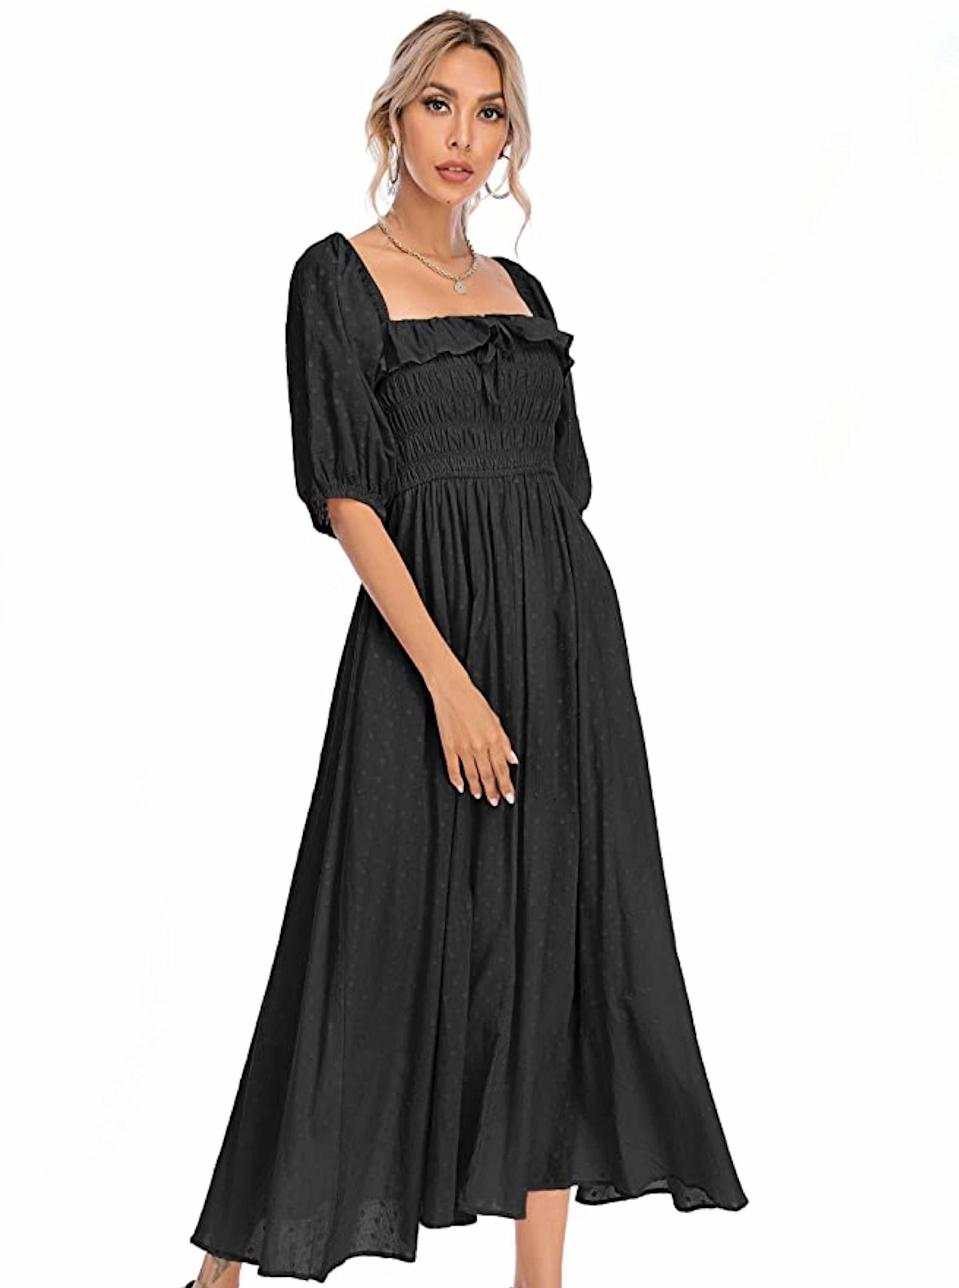 """Another <a href=""""https://www.glamour.com/gallery/things-to-buy-through-glamour-rewards?mbid=synd_yahoo_rss"""" rel=""""nofollow noopener"""" target=""""_blank"""" data-ylk=""""slk:peasant dress"""" class=""""link rapid-noclick-resp"""">peasant dress</a>, you say? It's the square-neck, ruffle trim, and balloon sleeves for me. $30, Amazon. <a href=""""https://www.amazon.com/R-Vivimos-Ruffled-Vintage-Elegant-Backless/dp/B089CJ5KF7"""" rel=""""nofollow noopener"""" target=""""_blank"""" data-ylk=""""slk:Get it now!"""" class=""""link rapid-noclick-resp"""">Get it now!</a>"""